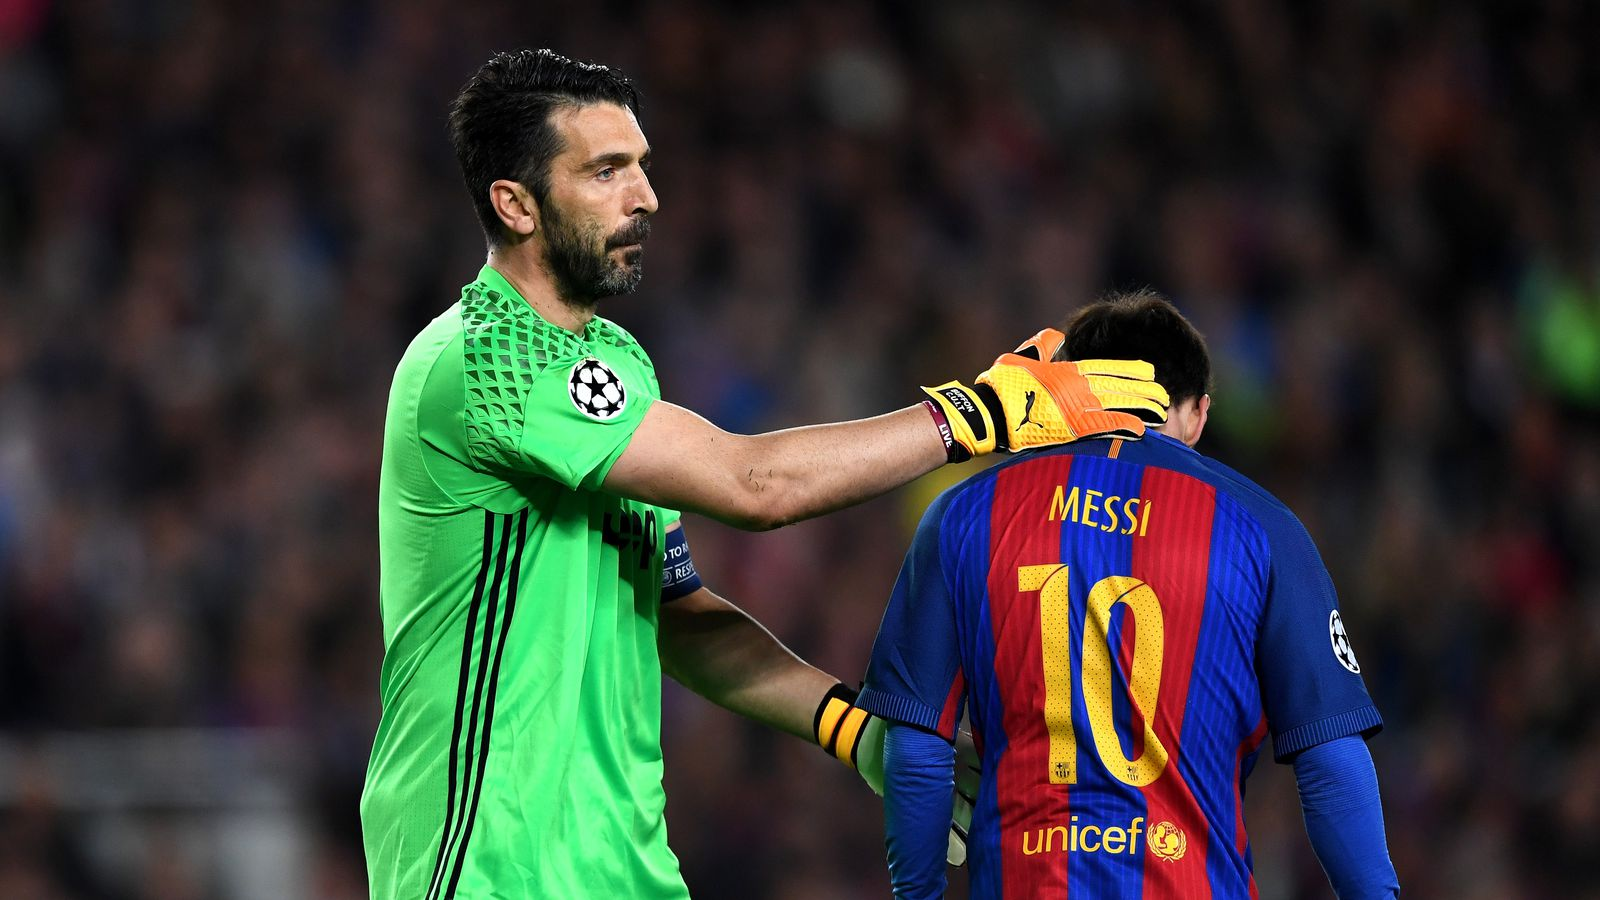 Barcelona Vs Juventus International Champions Cup 2017 Time Tv E Money Messi Schedule And Live Stream